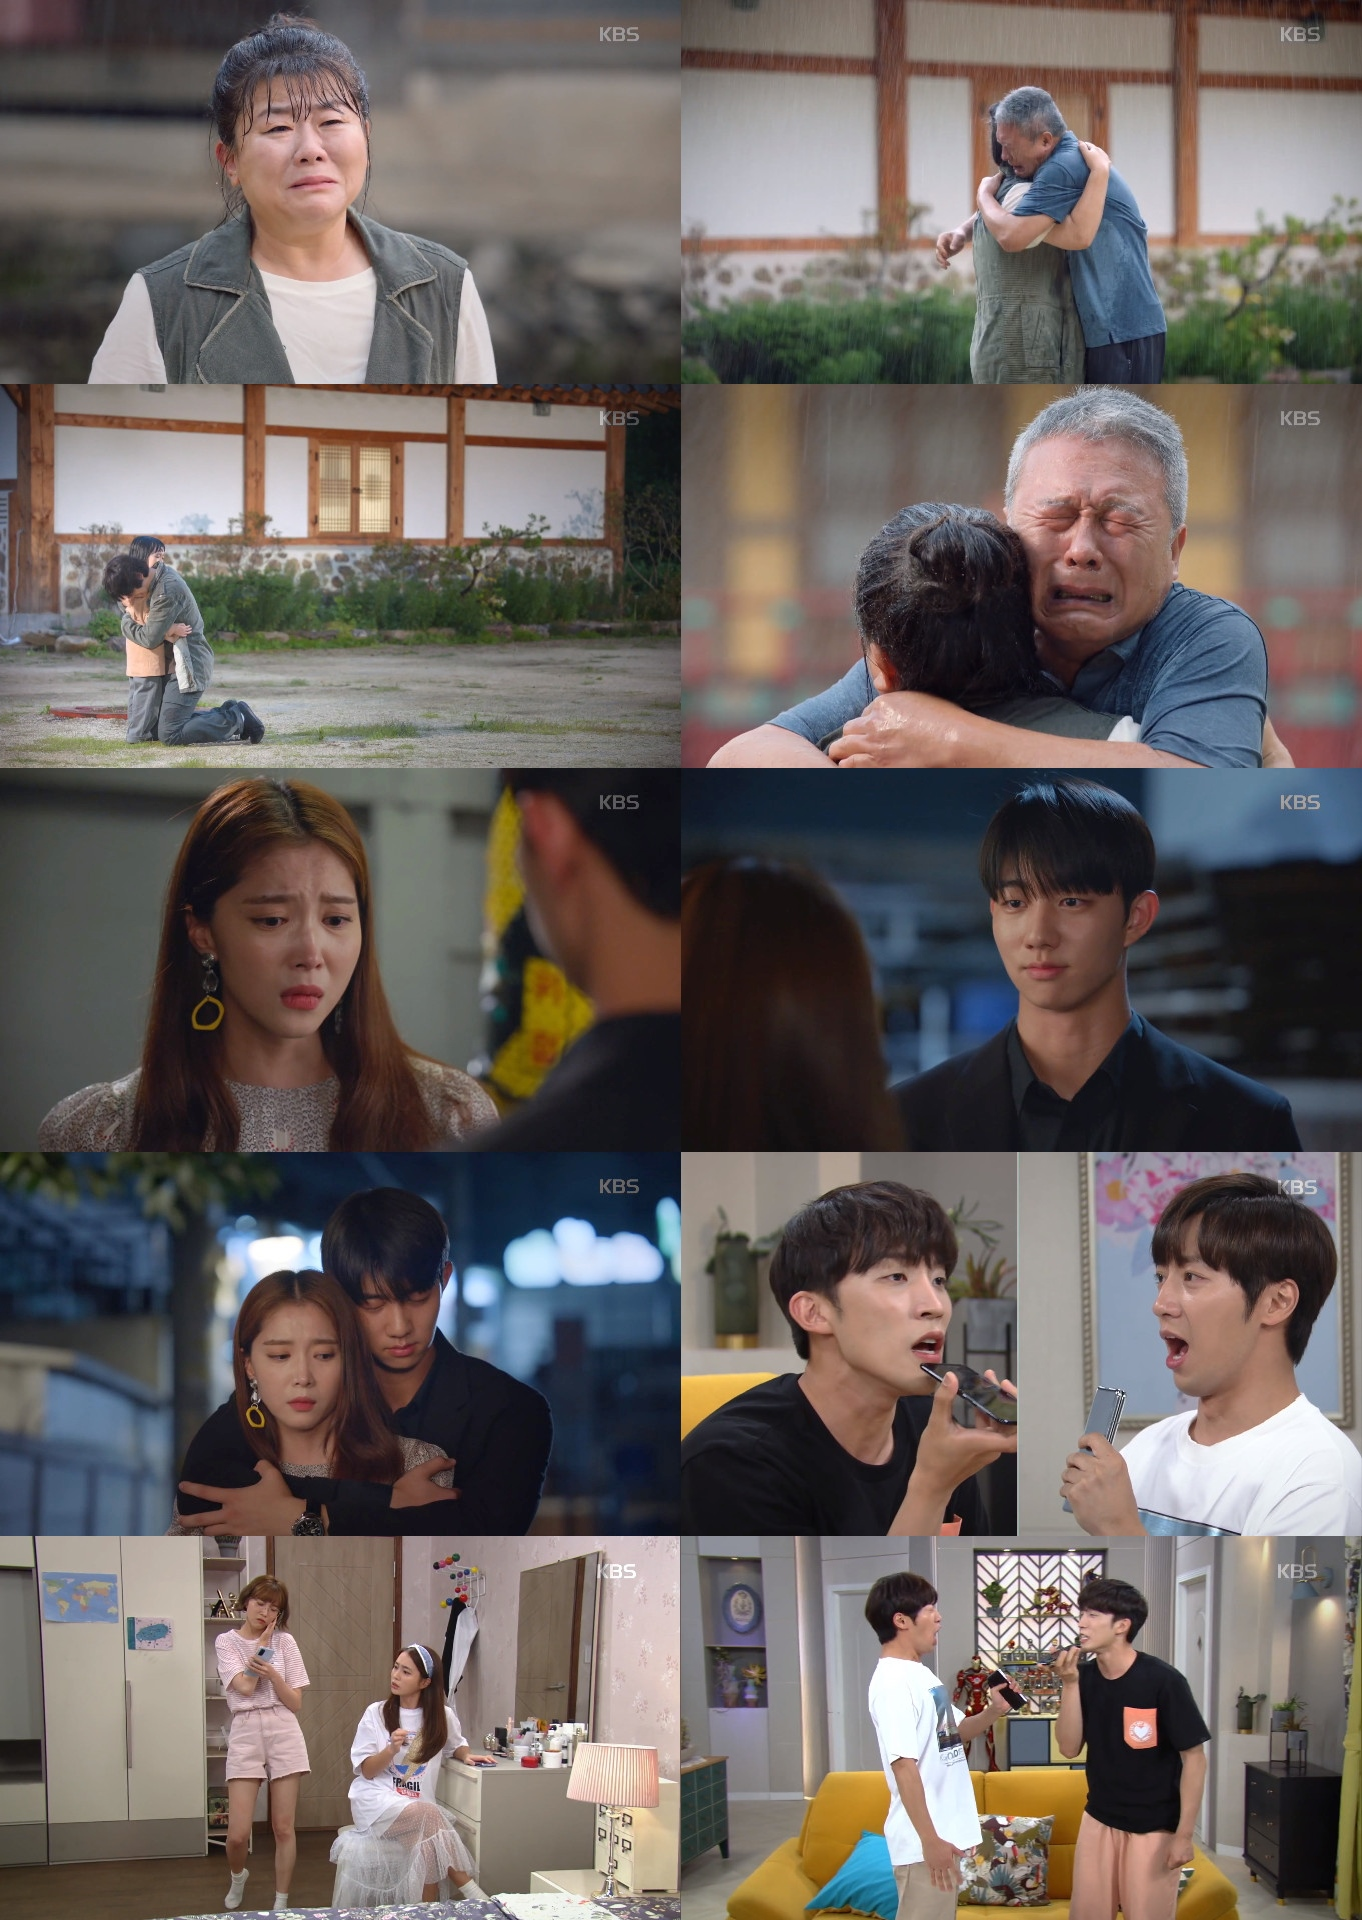 Famous scene in 'Once Again', Cheon Ho-jin, Lee Jung-eun, brother and sister reunion '37% highest ratings'